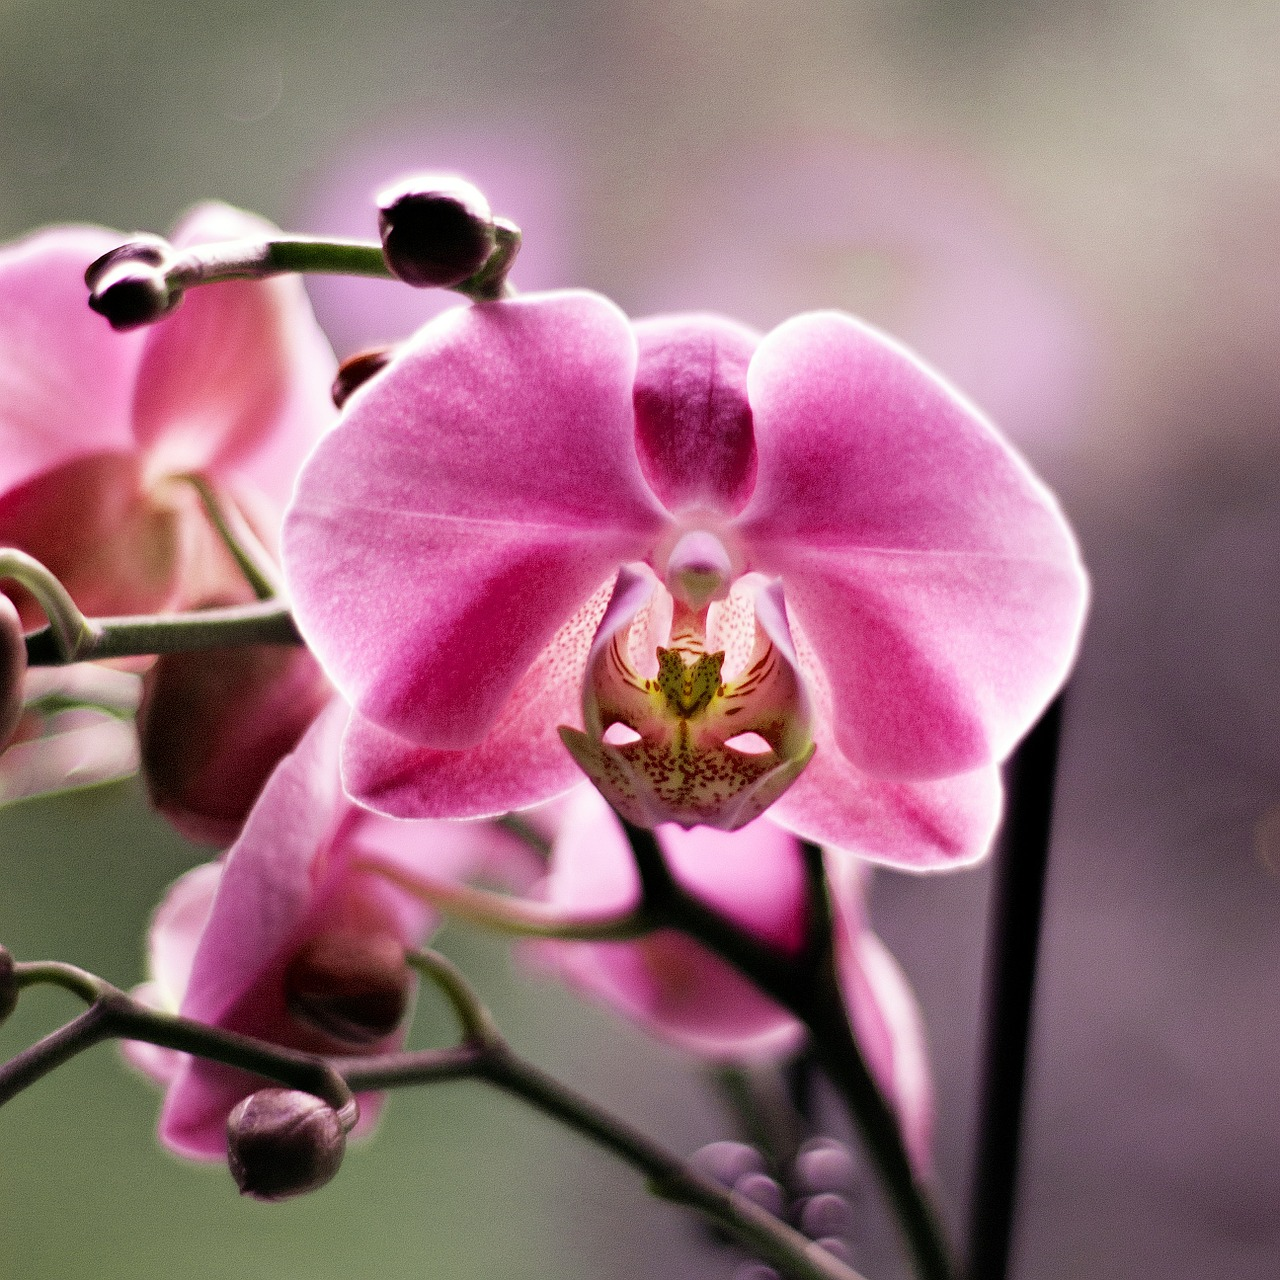 orchid flower beauty free photo